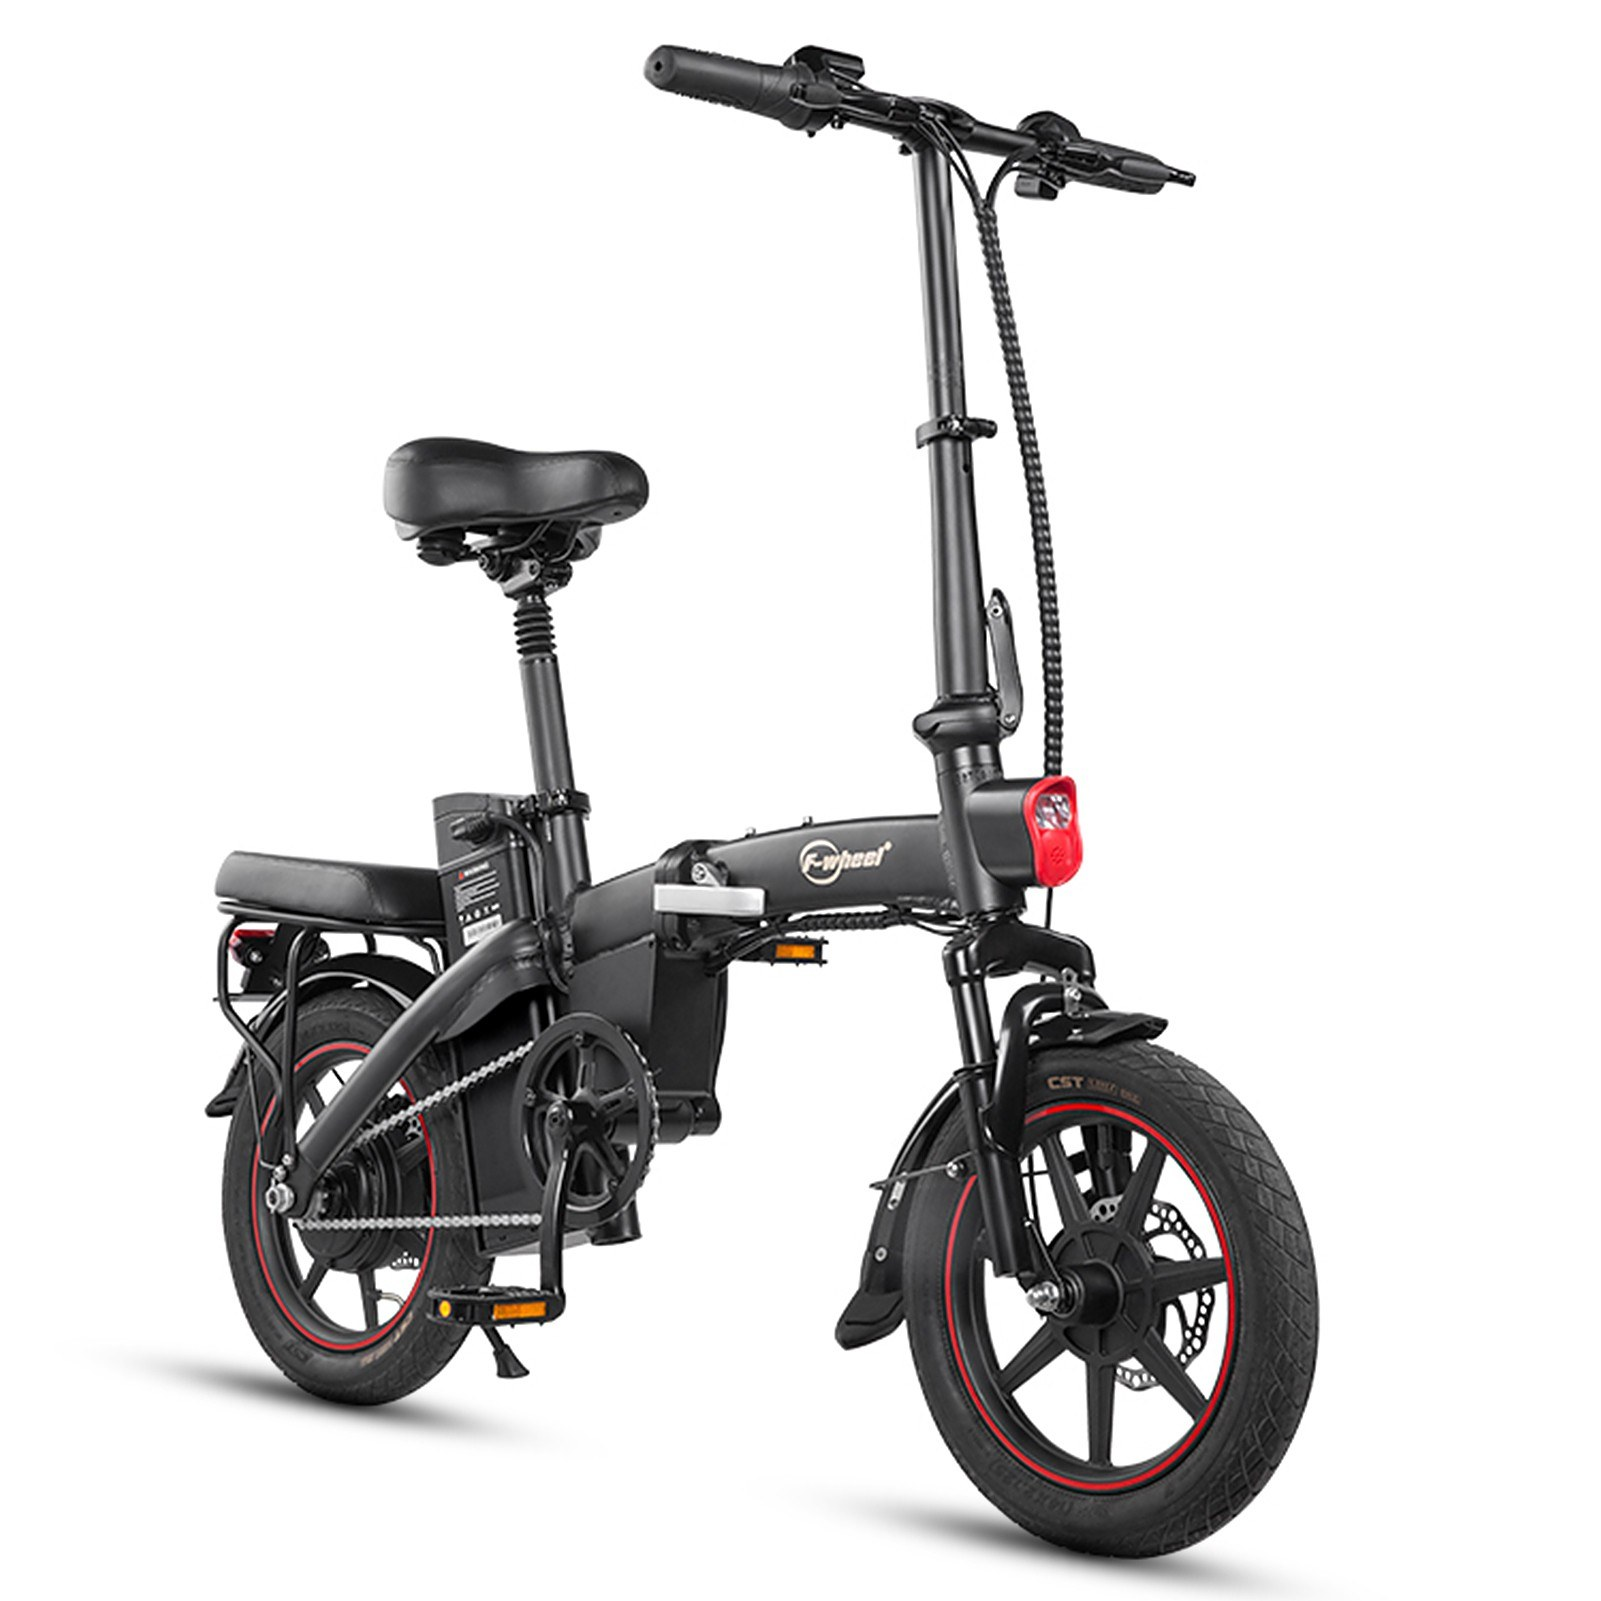 tomtop.com - [EU Warehouse] $194 OFF F-Wheel A5-7.5AH 350W 14 Inch Folding Electric Bicycle, $669.99 (Inclusive of VAT)